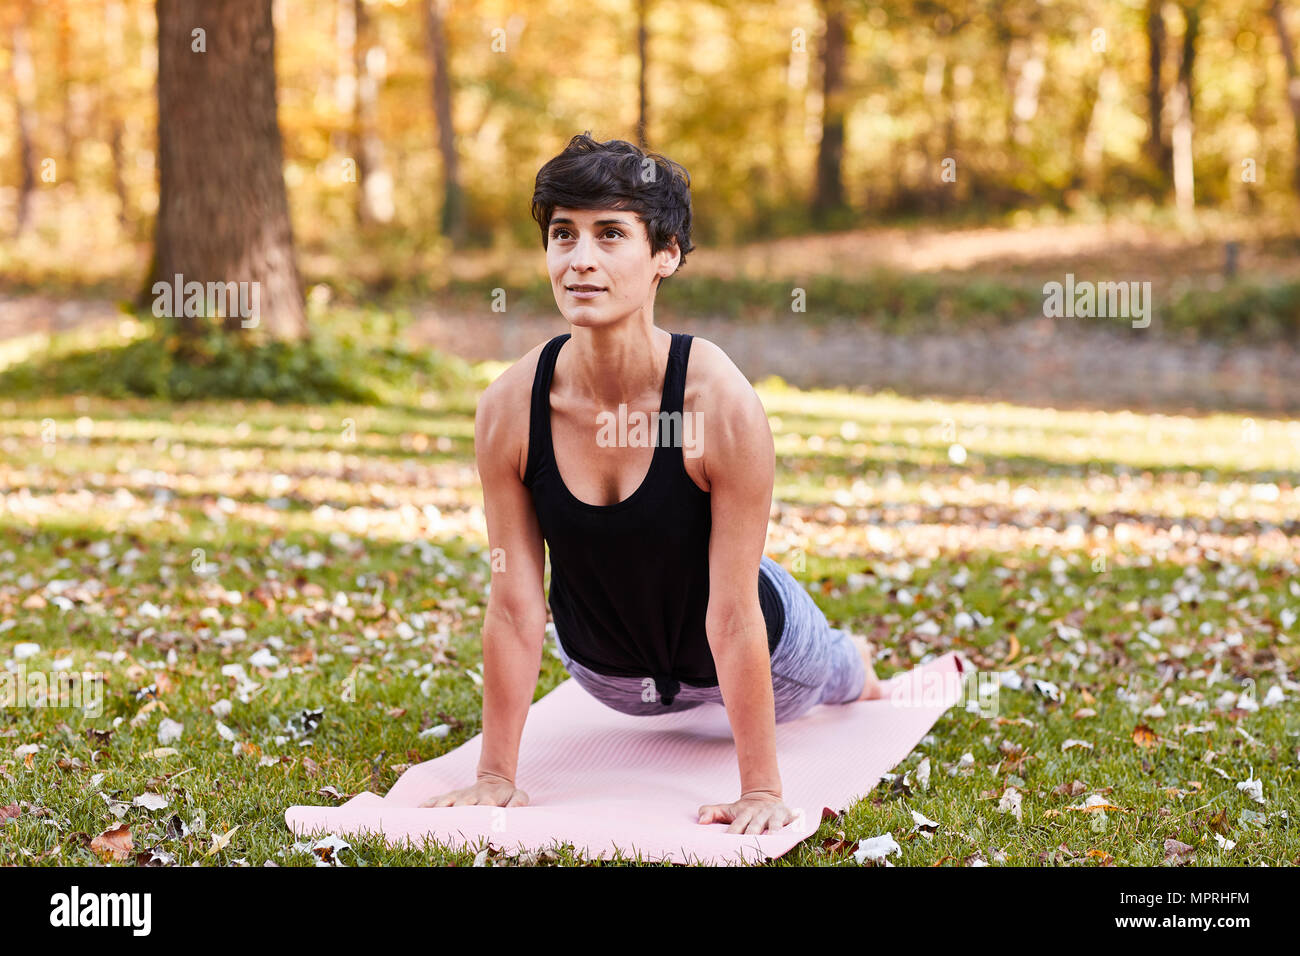 Mid adult woman in forest practicing yoga, cobra pose - Stock Image